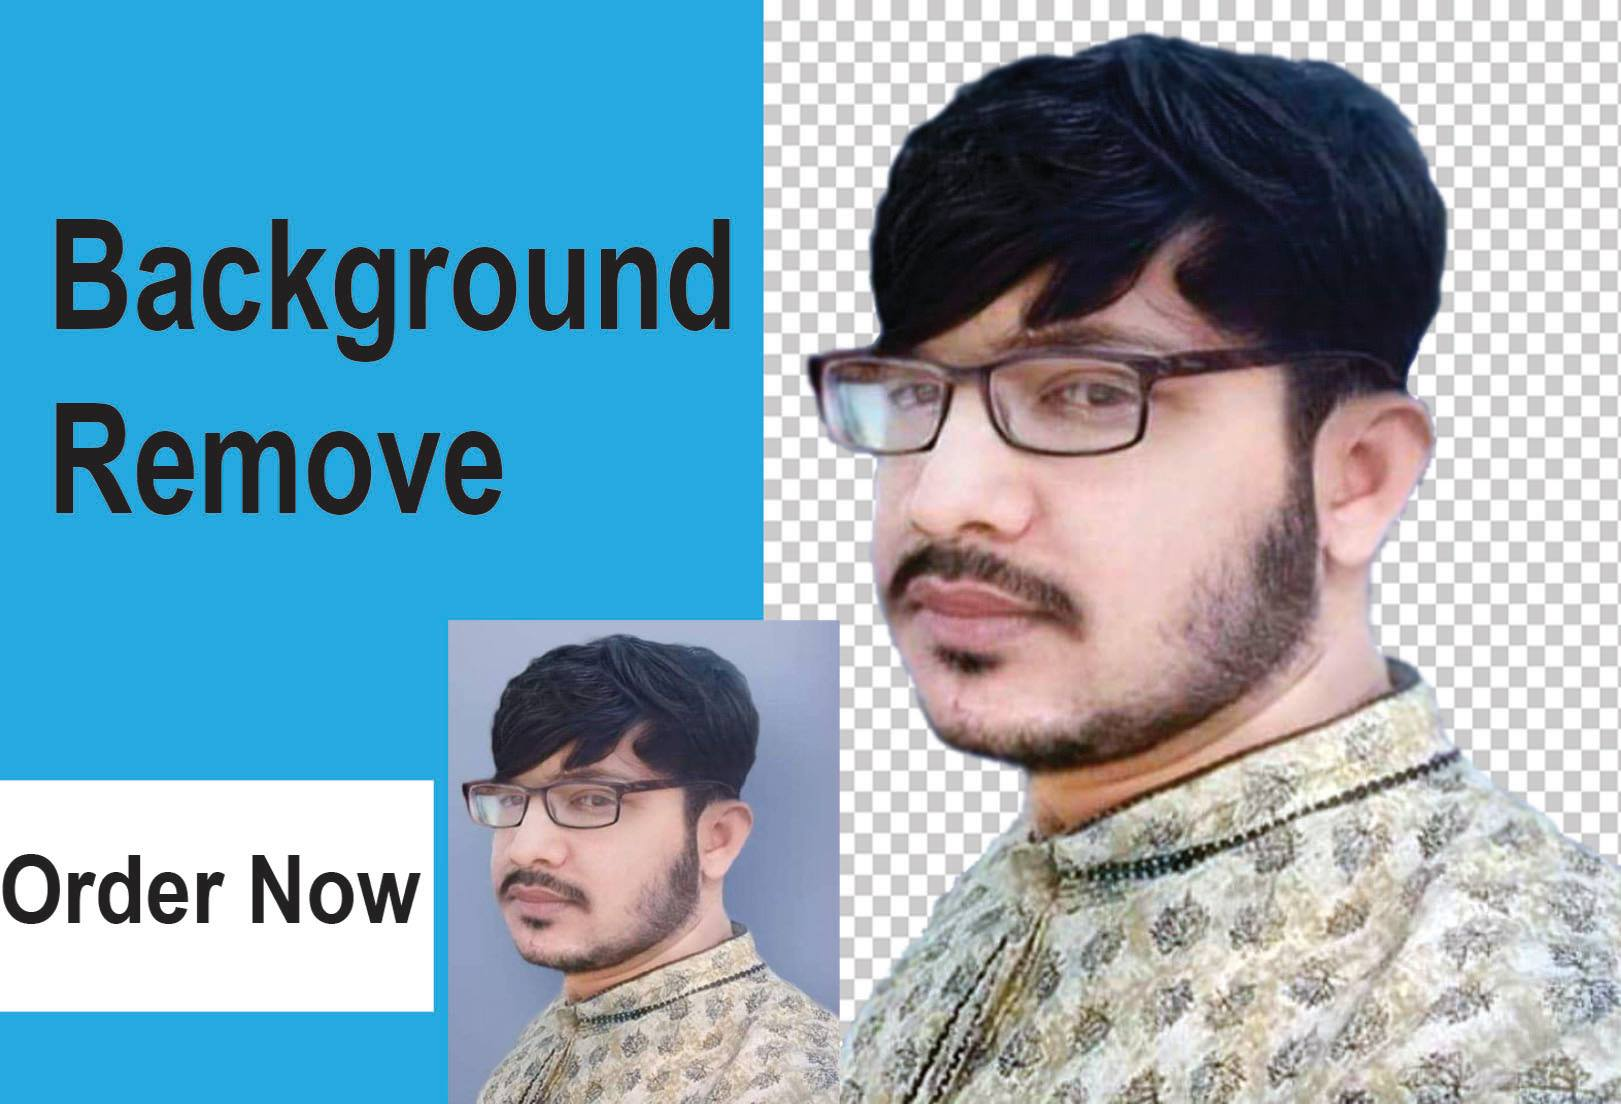 I will do 20 image background remove or change in 12 hours